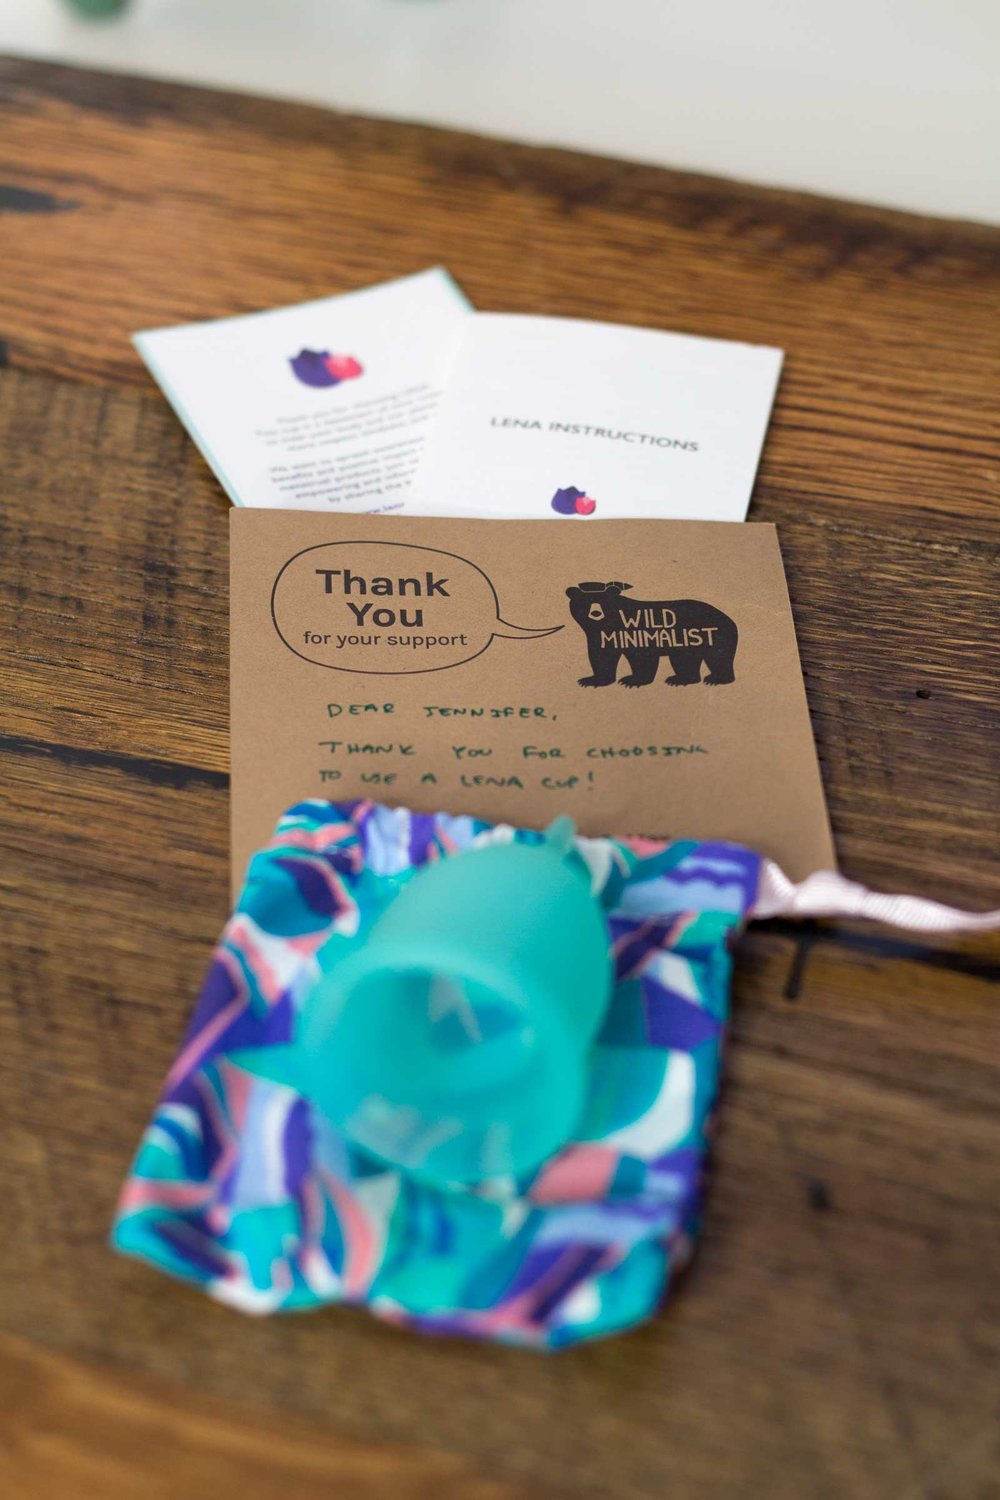 Handwritten thank you note from Max and Lily of Wild Minimalist zero waste online shop and Lena Cup